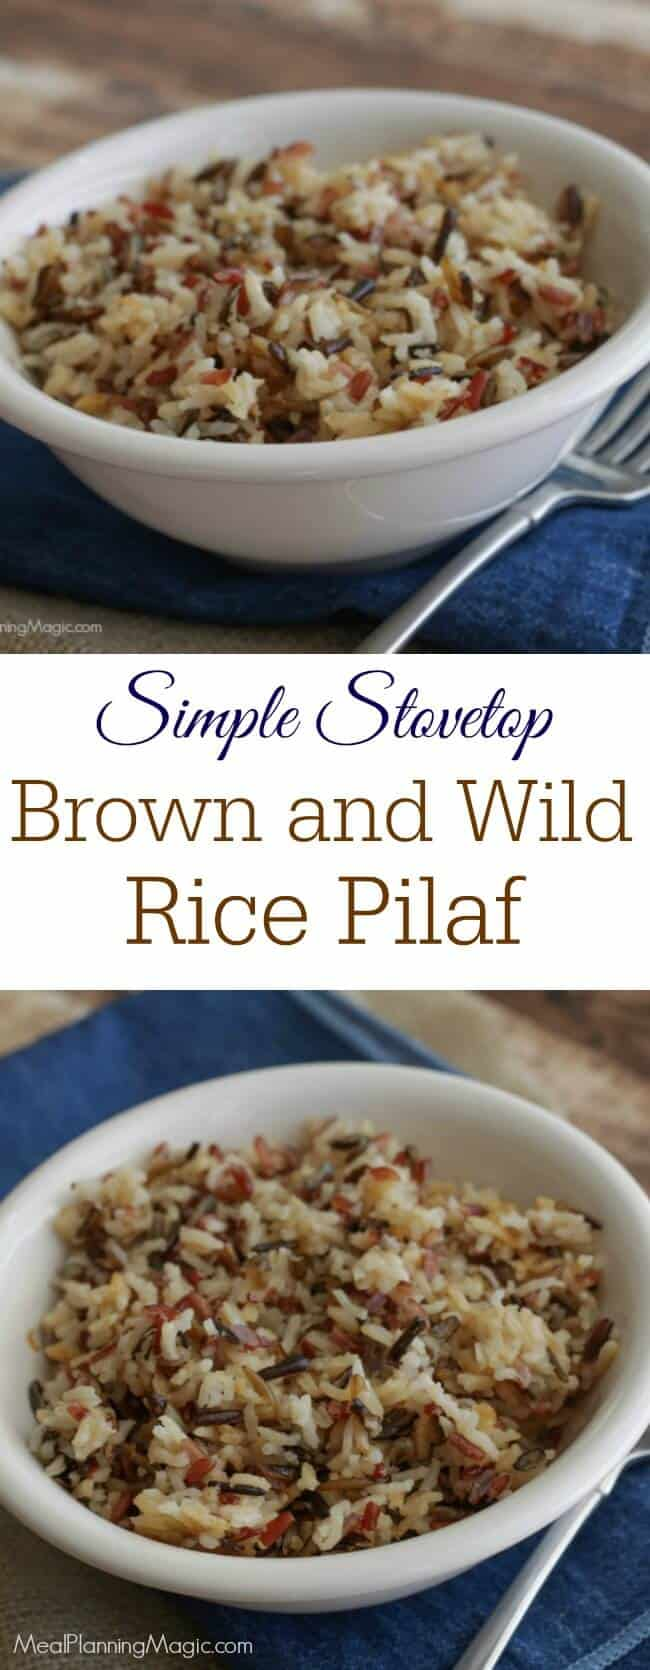 Stove top rice pilaf recipes easy